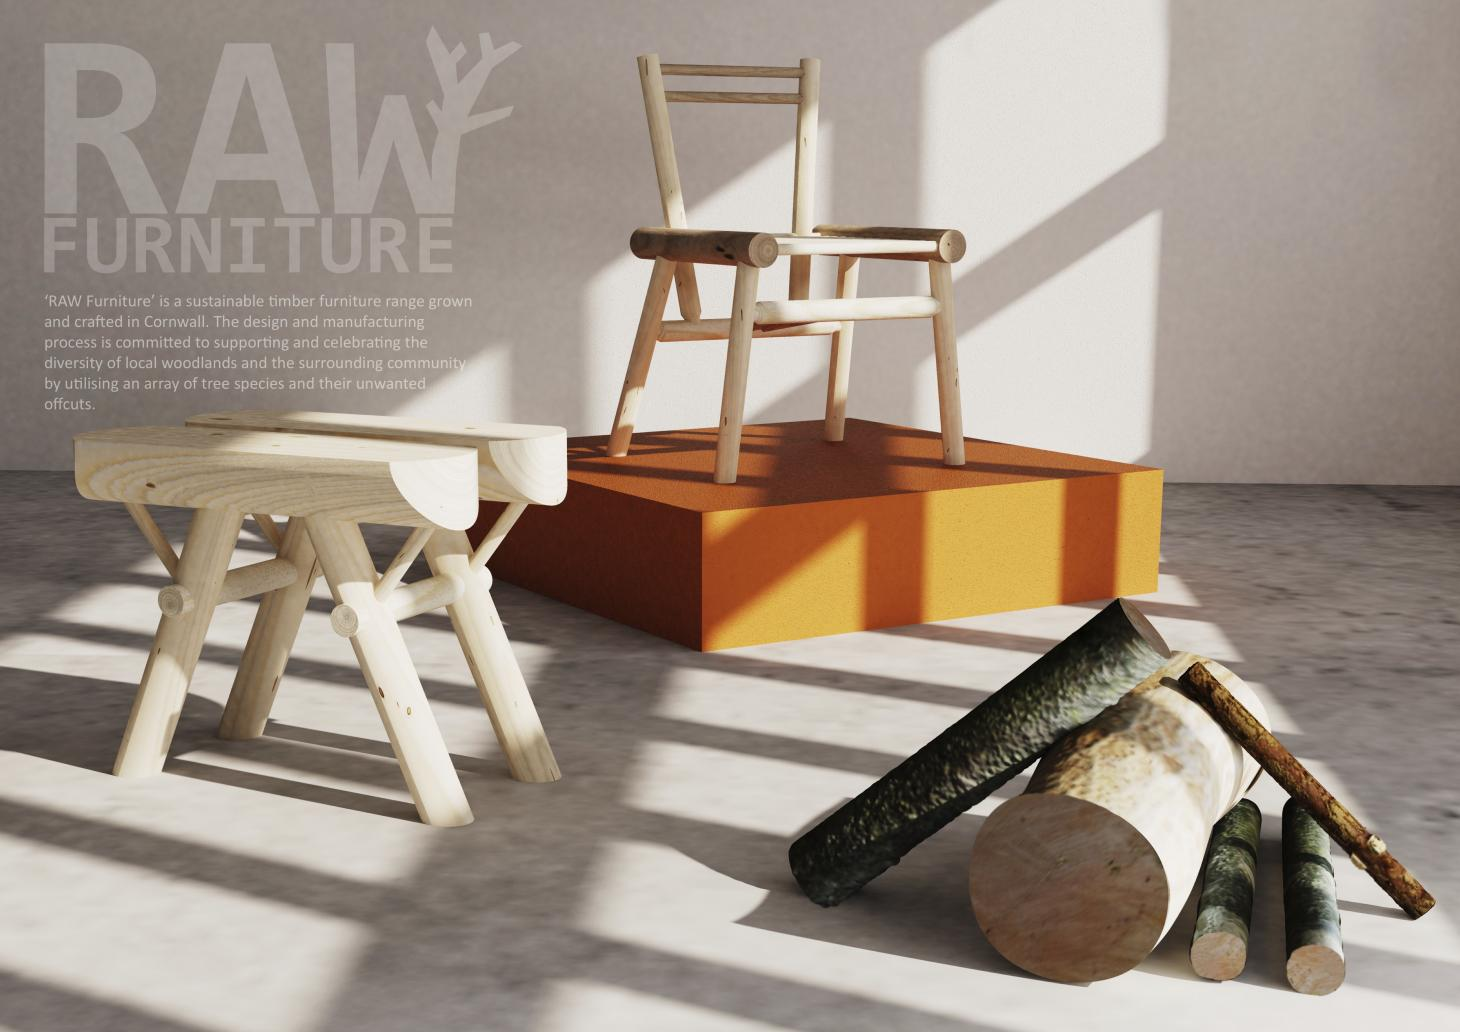 Raw Furniture is a furniture making scheme for Cornwall as part of RSA's A New Leaf competition